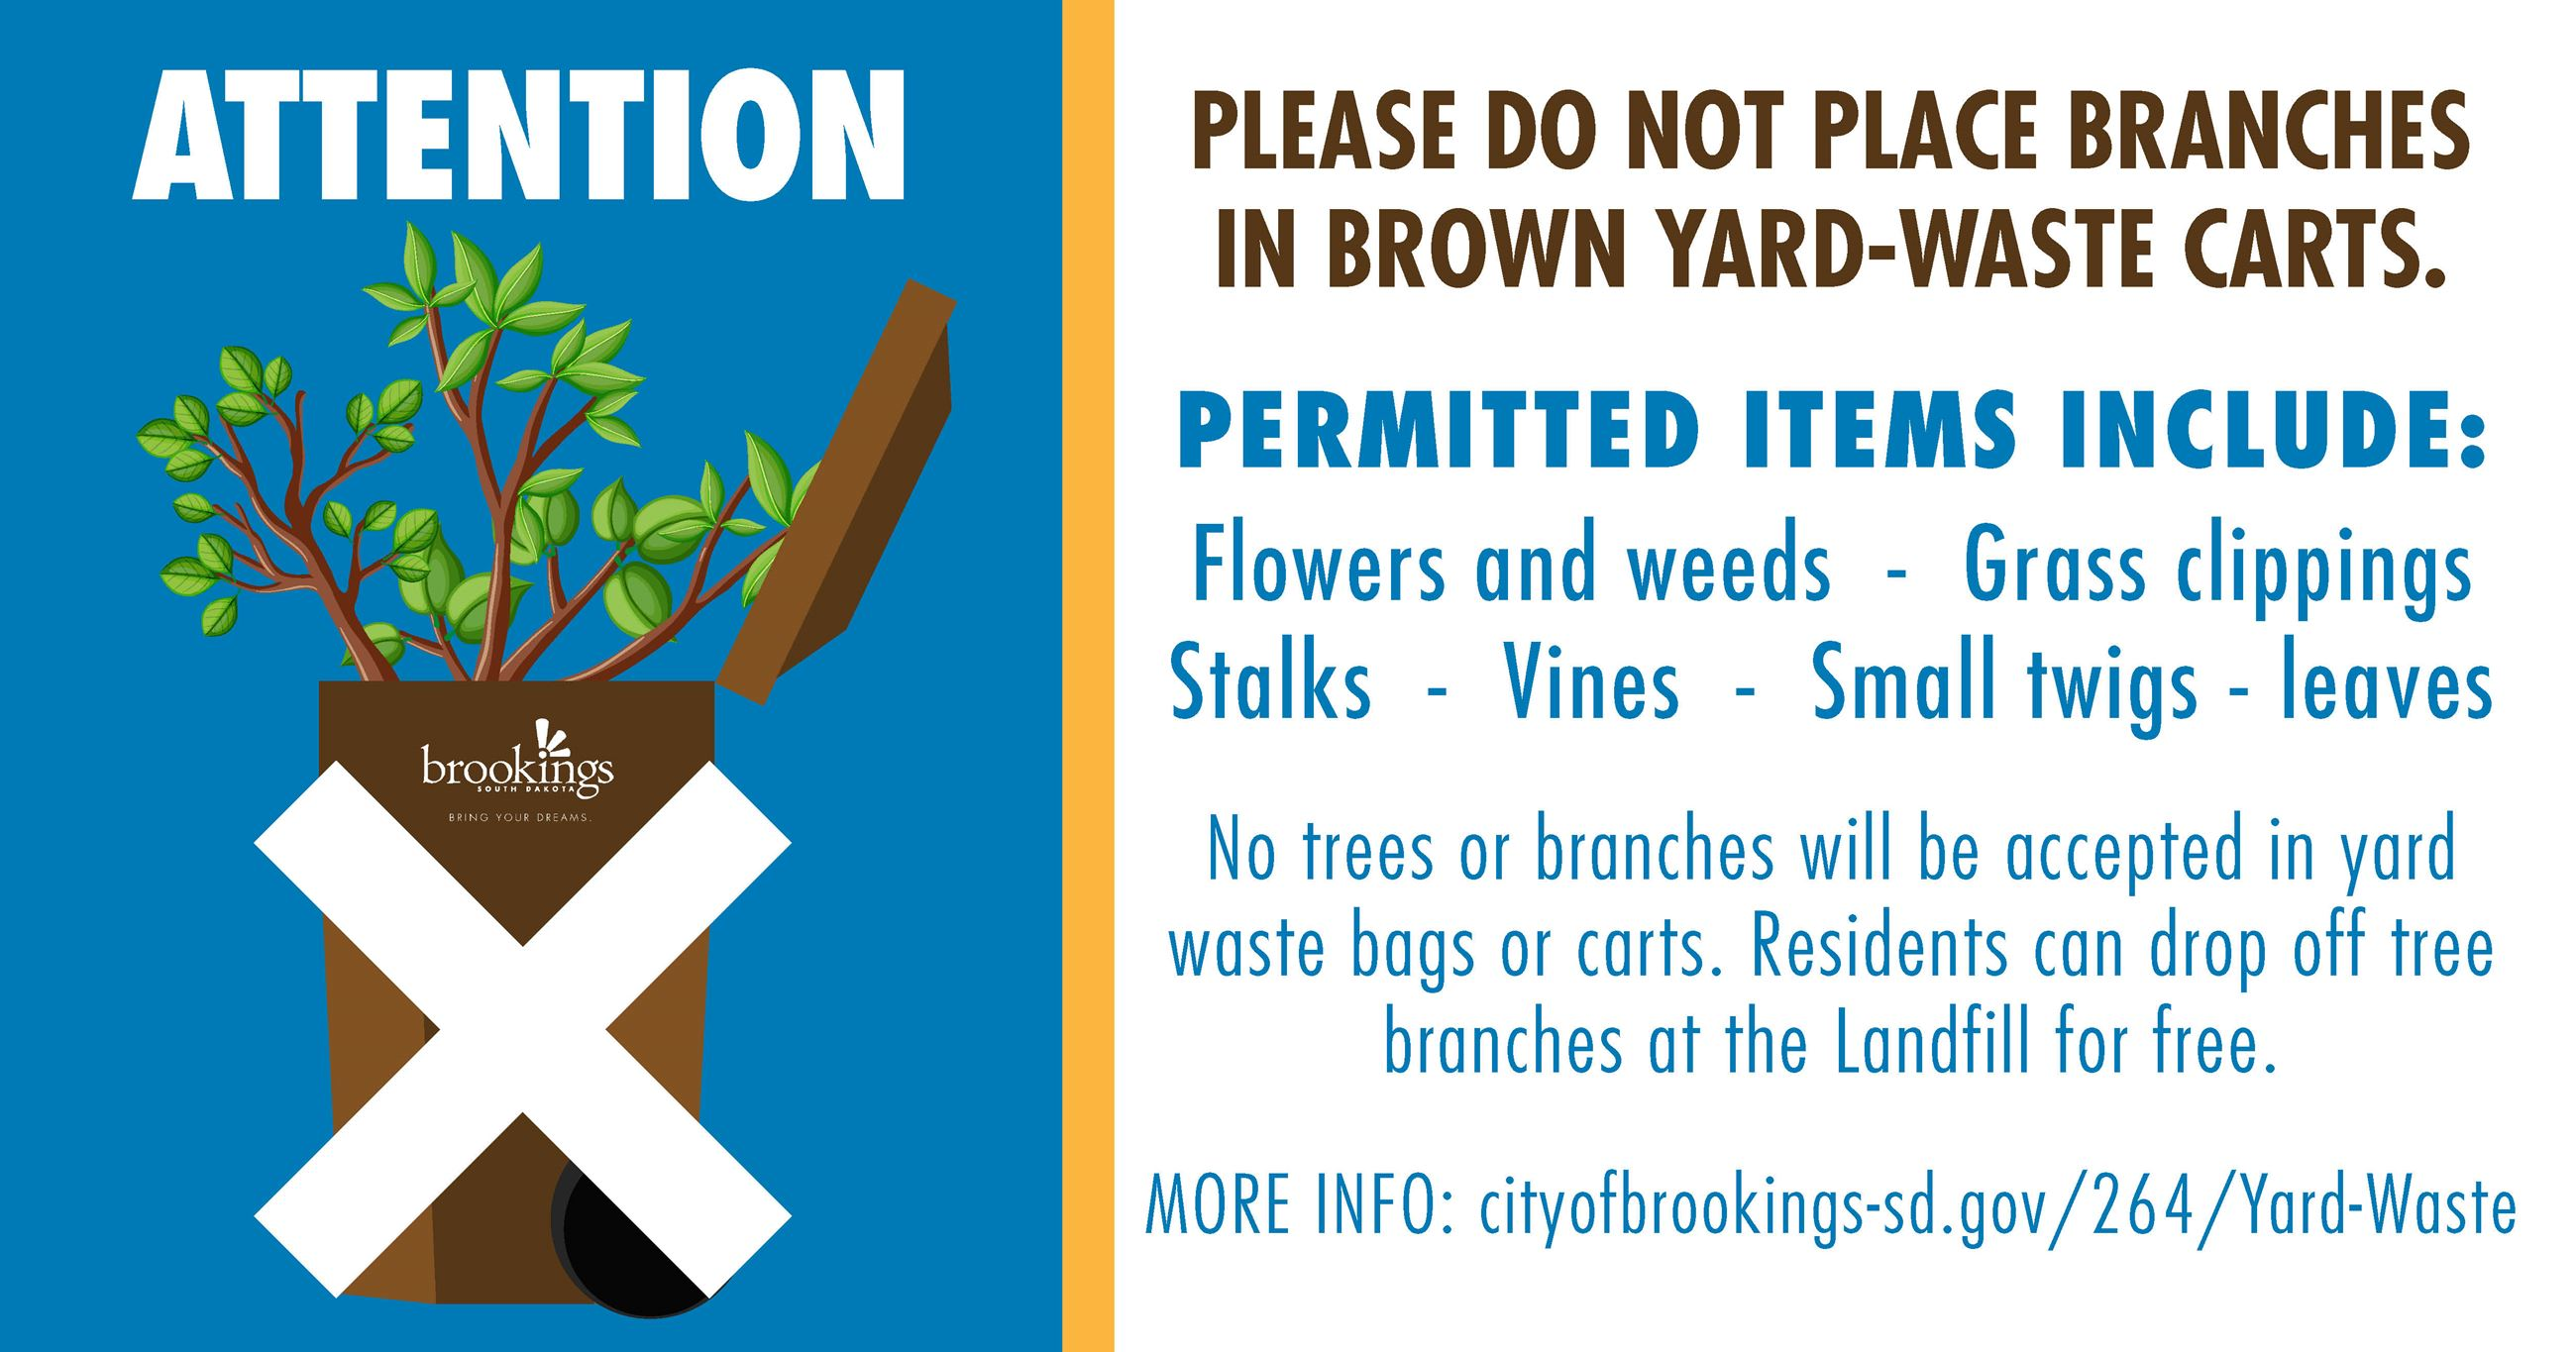 No Tree Branches Allowed Image of Yard Waste Cart with tree branches in it and x over it